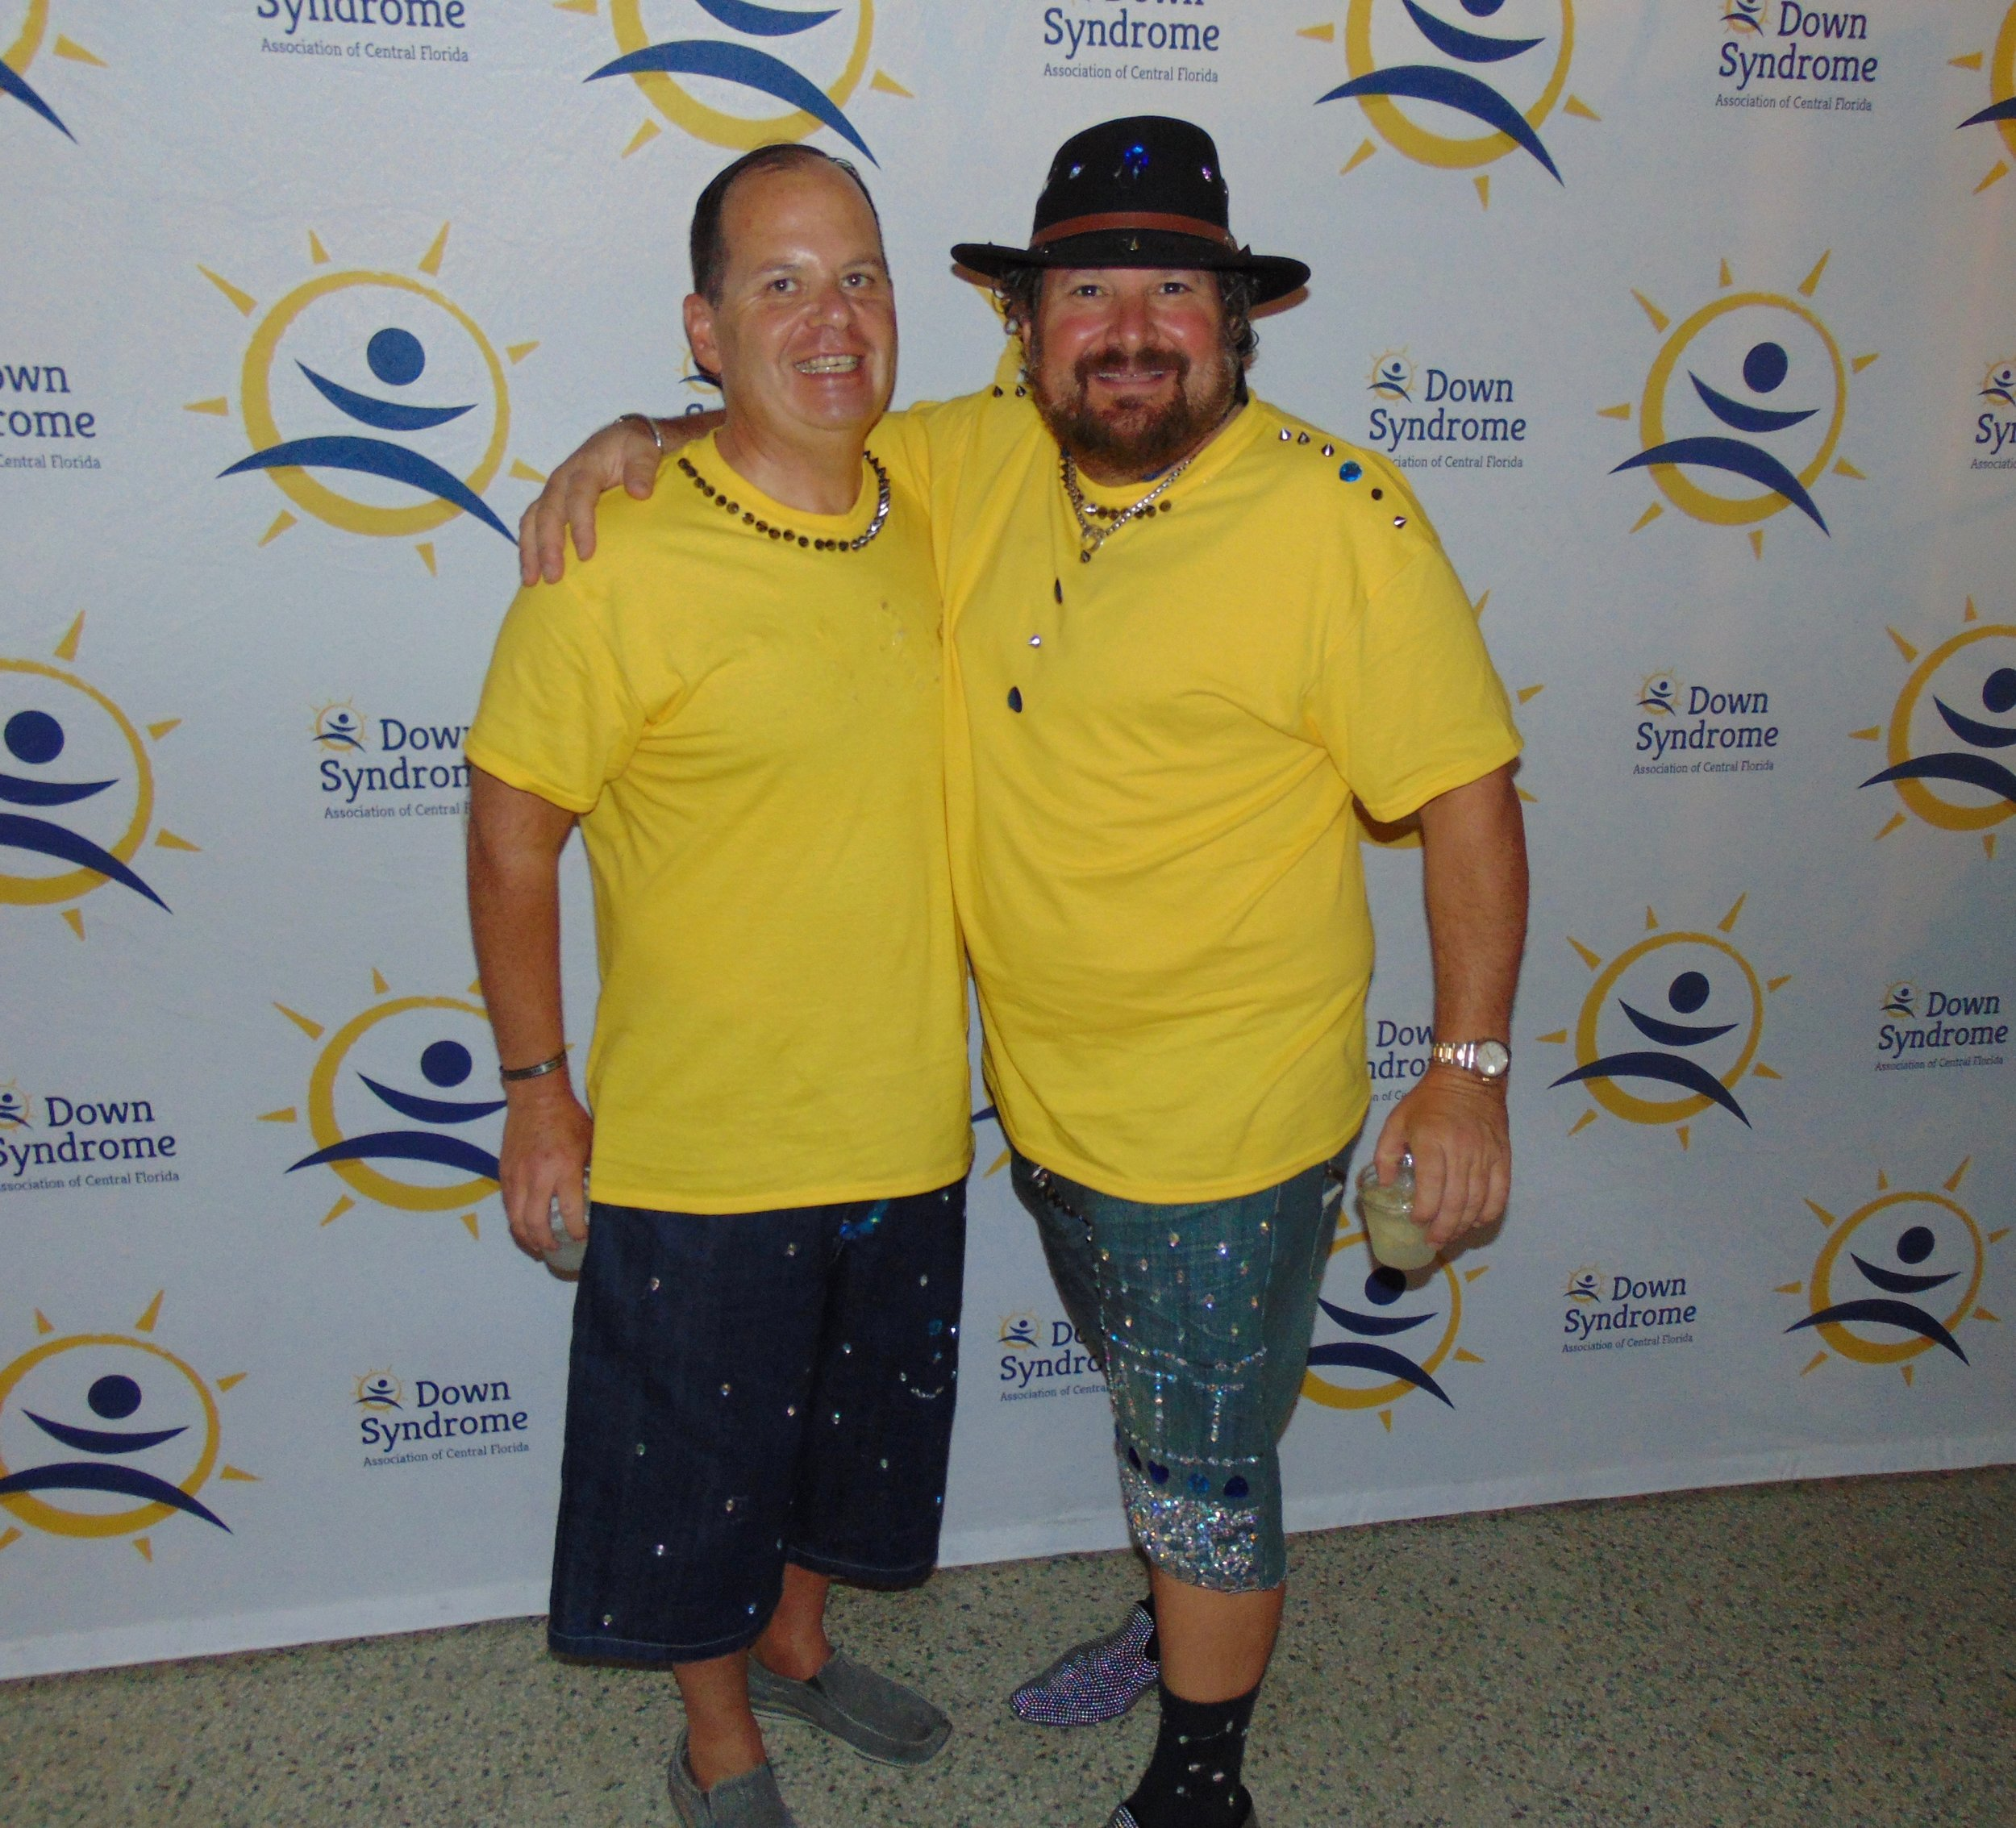 697ecdee Down to Party & Auction — Down Syndrome Association of Central Florida